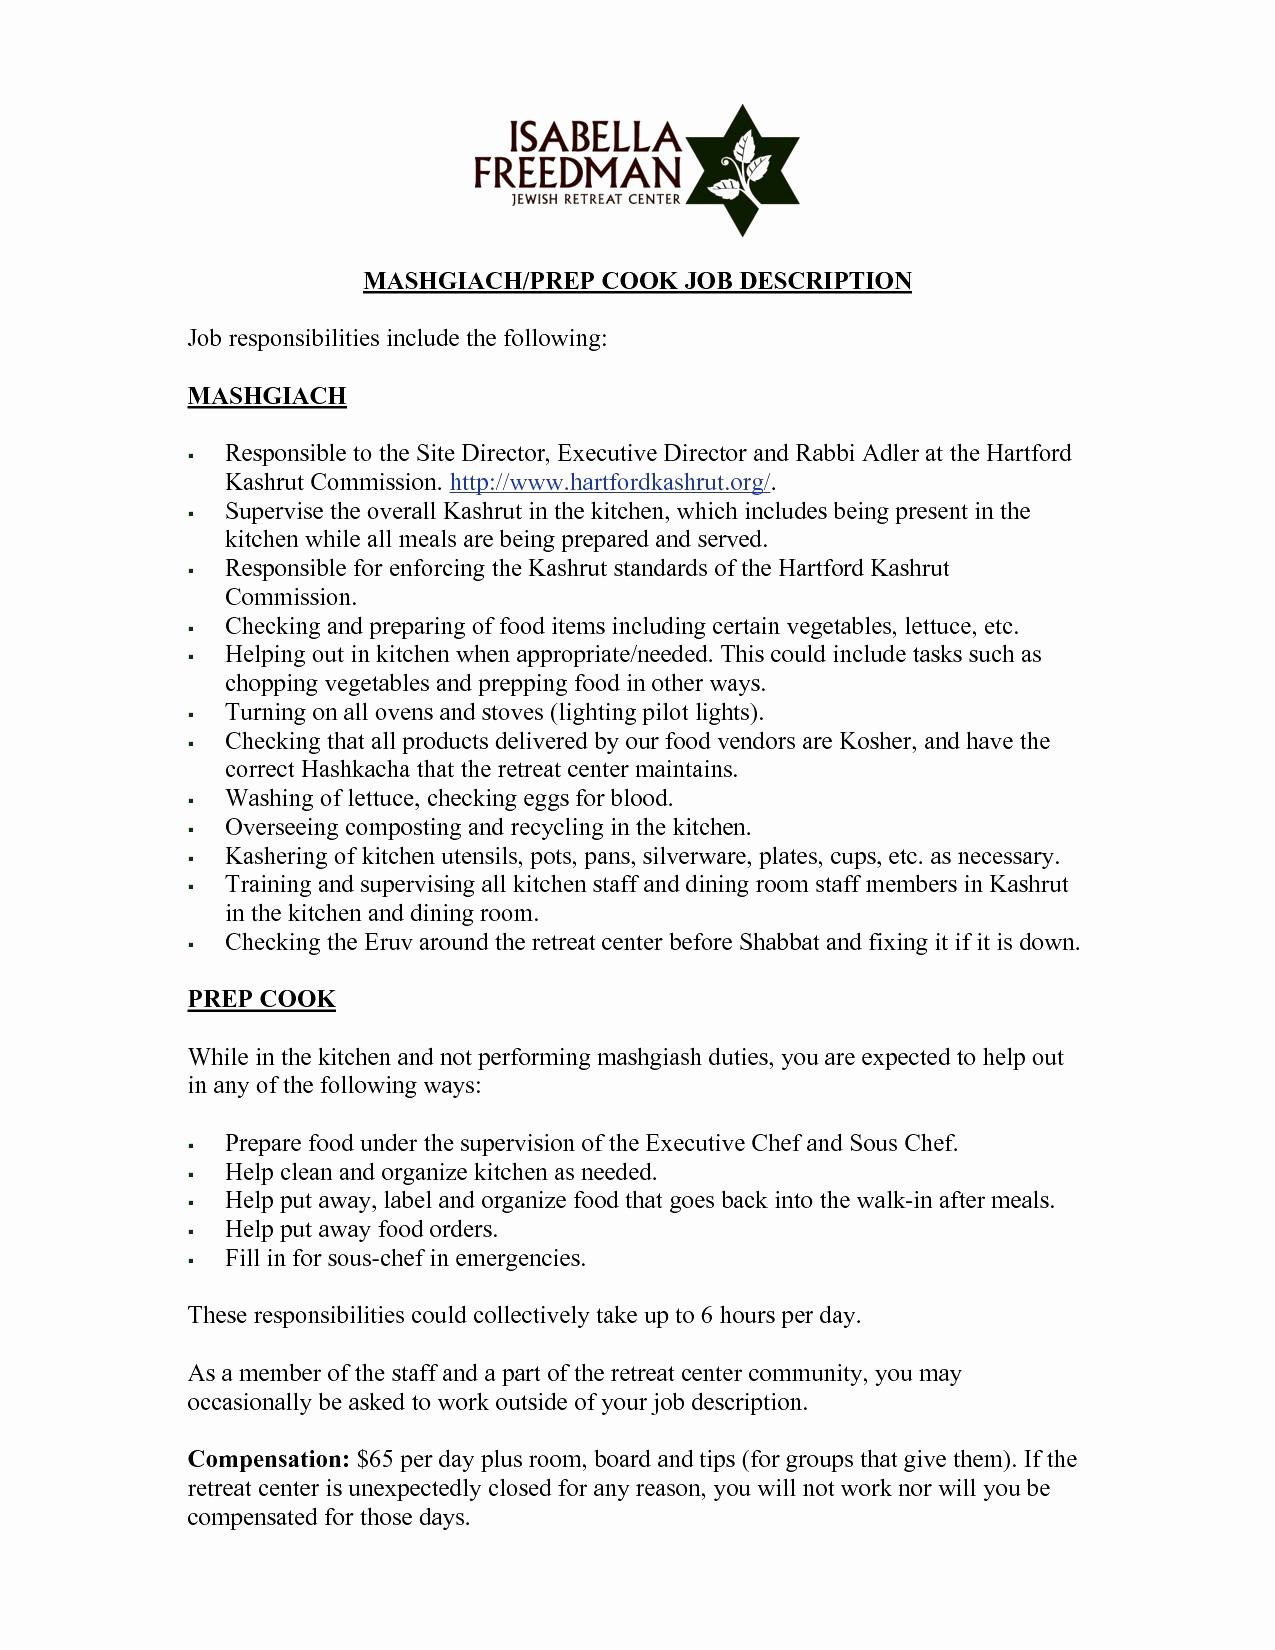 Medical Emergency Letter Template - Resume Character Reference format Elegant Best Example Resume Cover